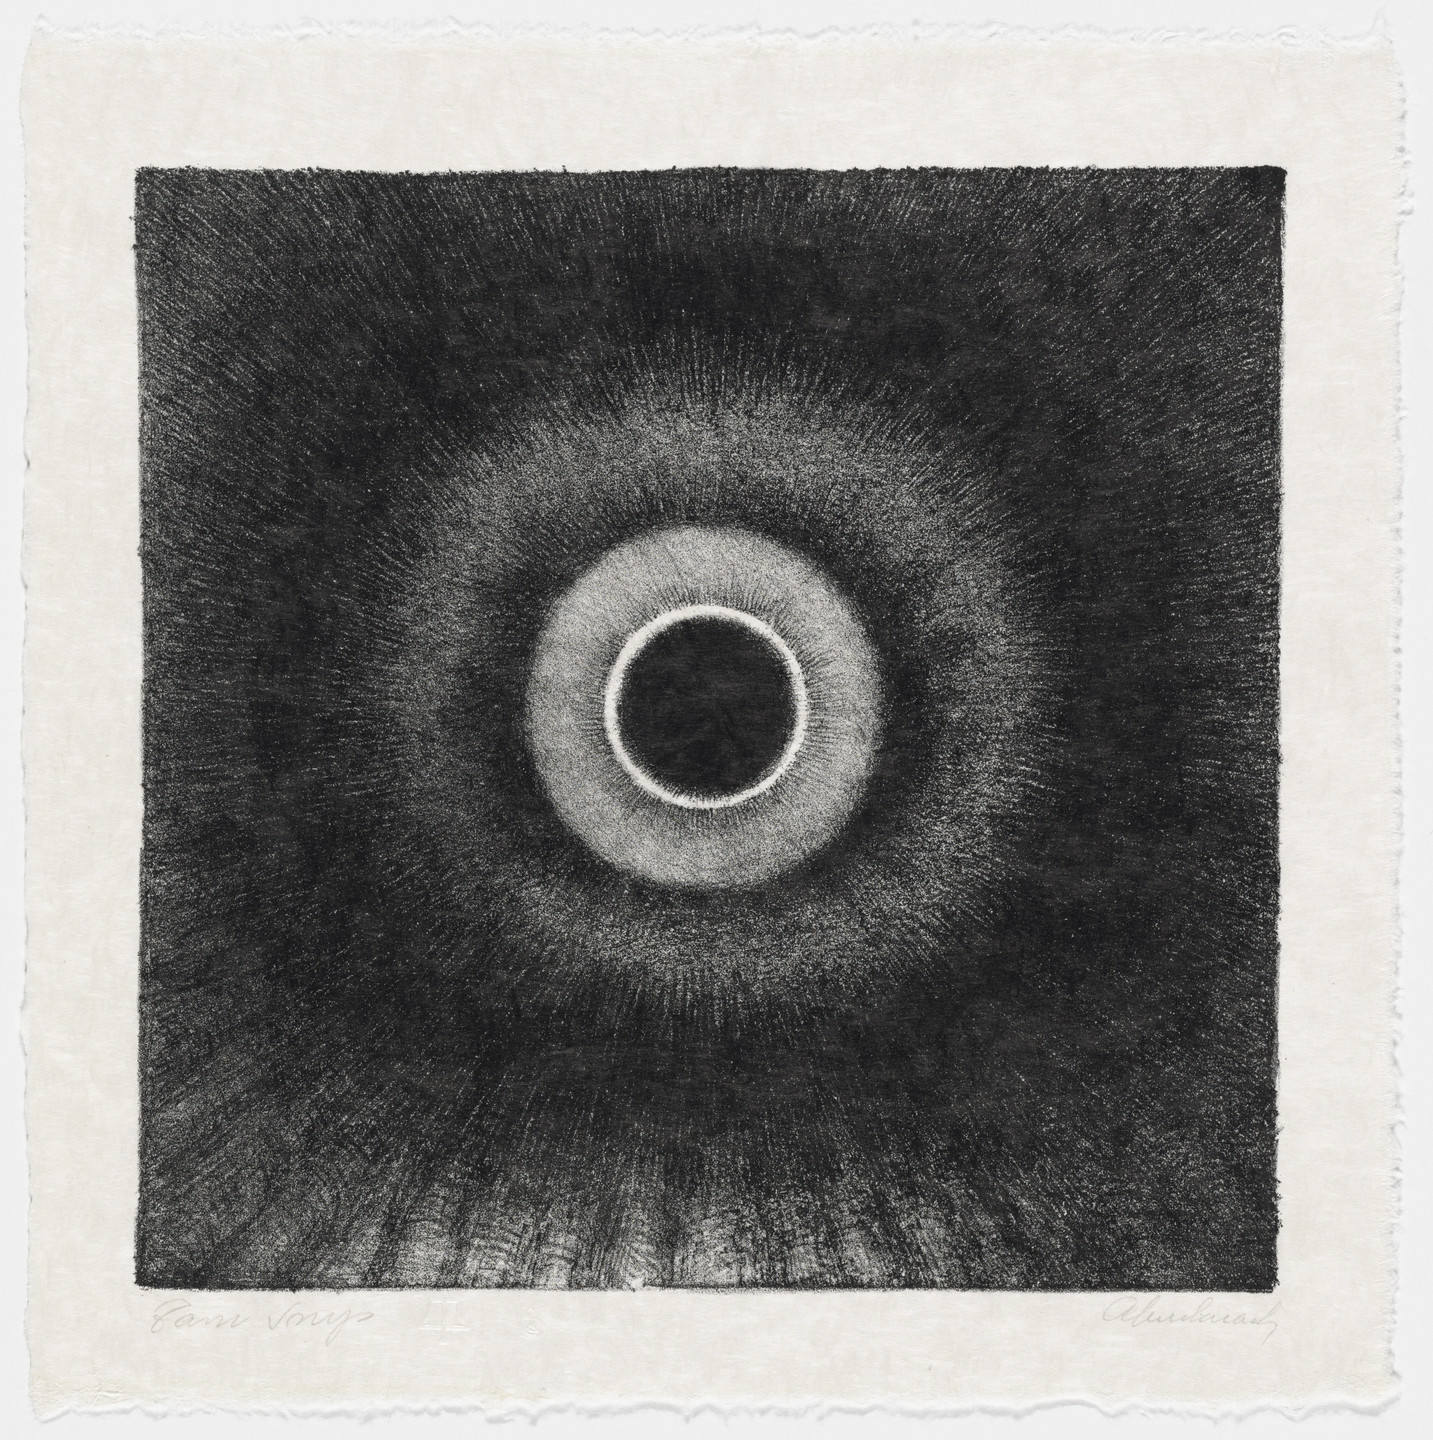 Rodolfo Abularach. Untitled. November 2-9, 1966